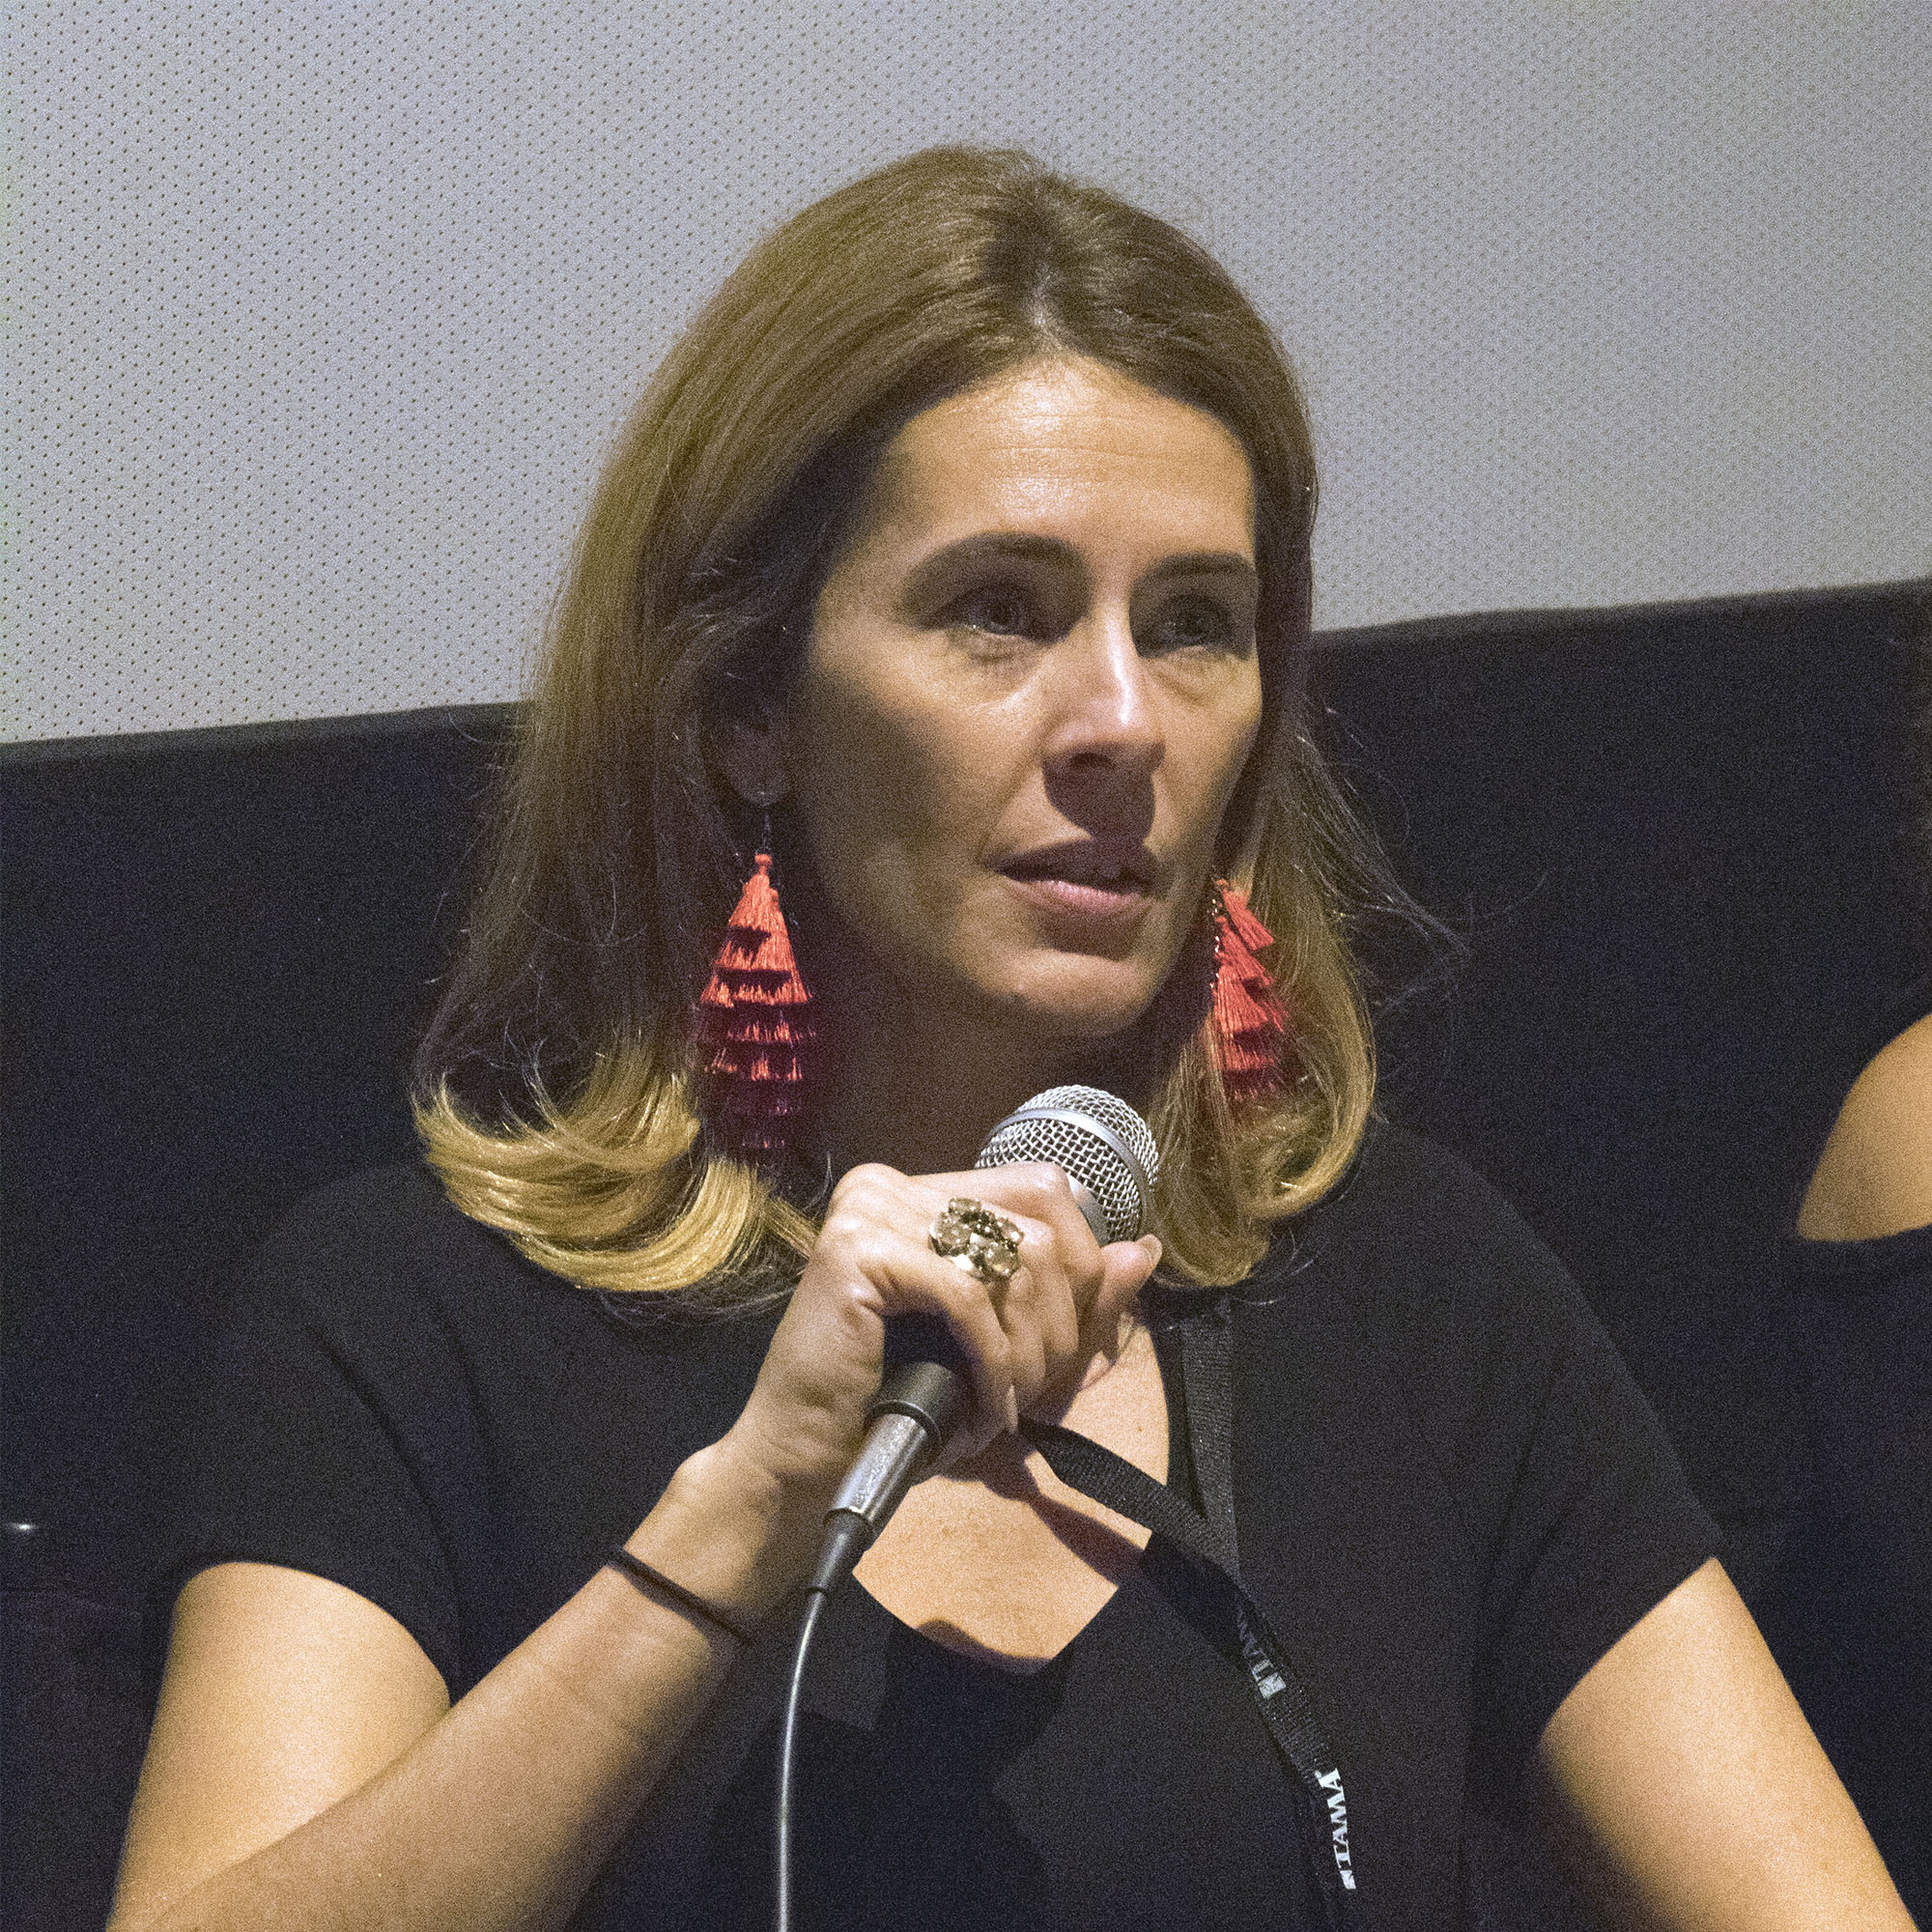 Red Nation Film Festival -NATIVES IN CHARGE OF THEIR NARRATIVE on Tuesday, November 14, 2017 at Laemele Monica Film Center Screening of Open Season (short) and Wind River. Open Season Director - Jenna Cavelle